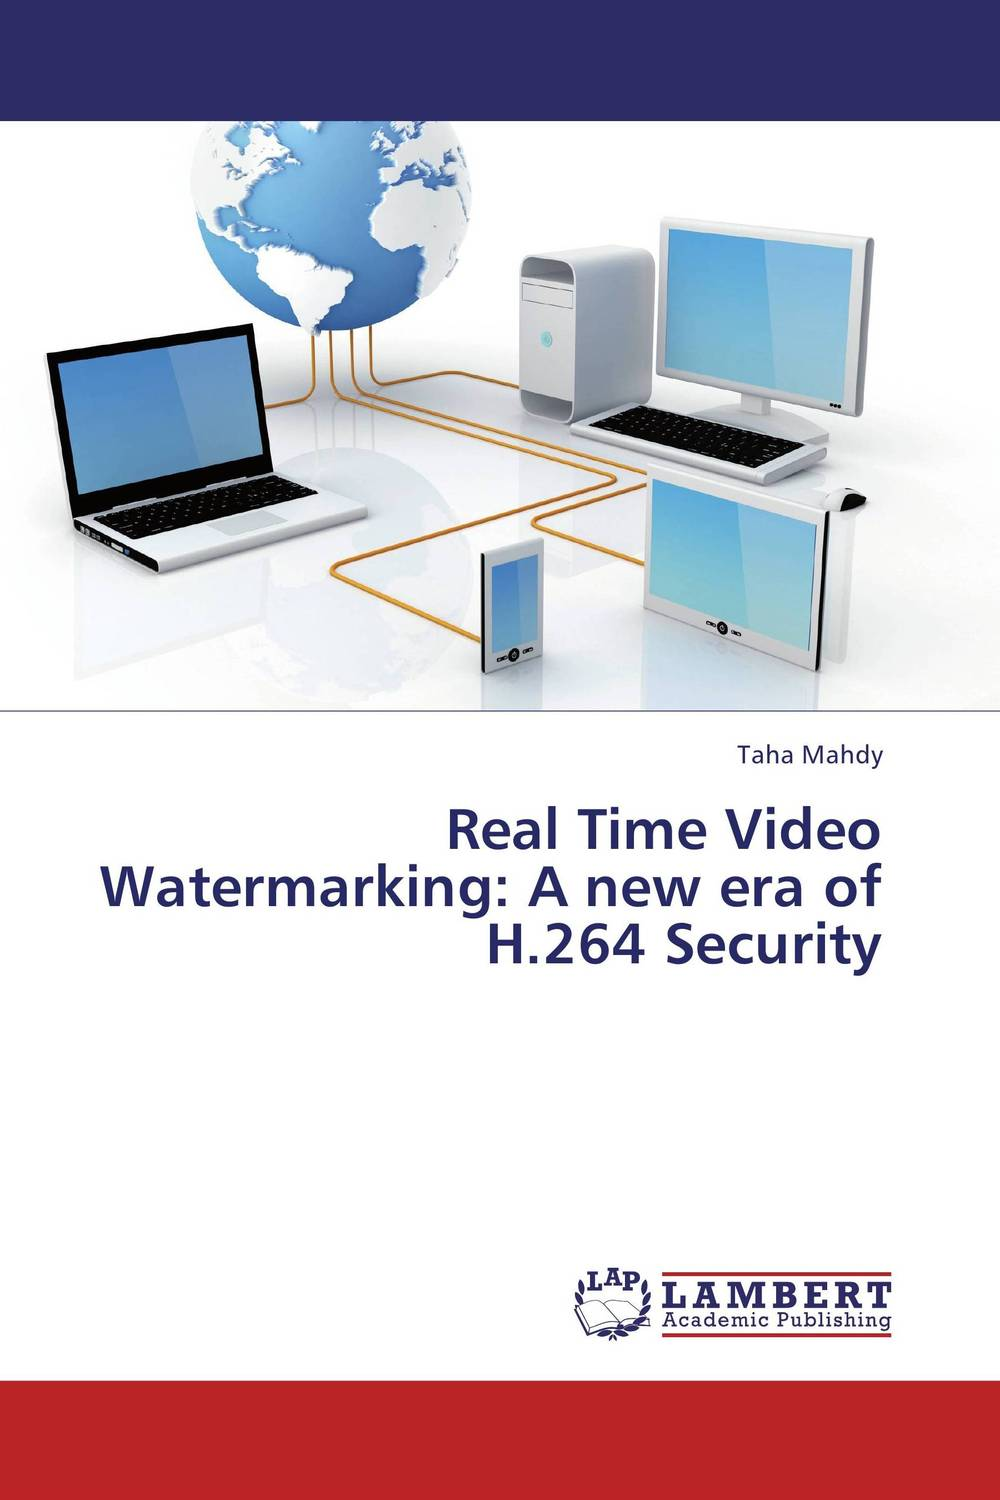 Real Time Video Watermarking: A new era of H.264 Security hybrid video watermarking